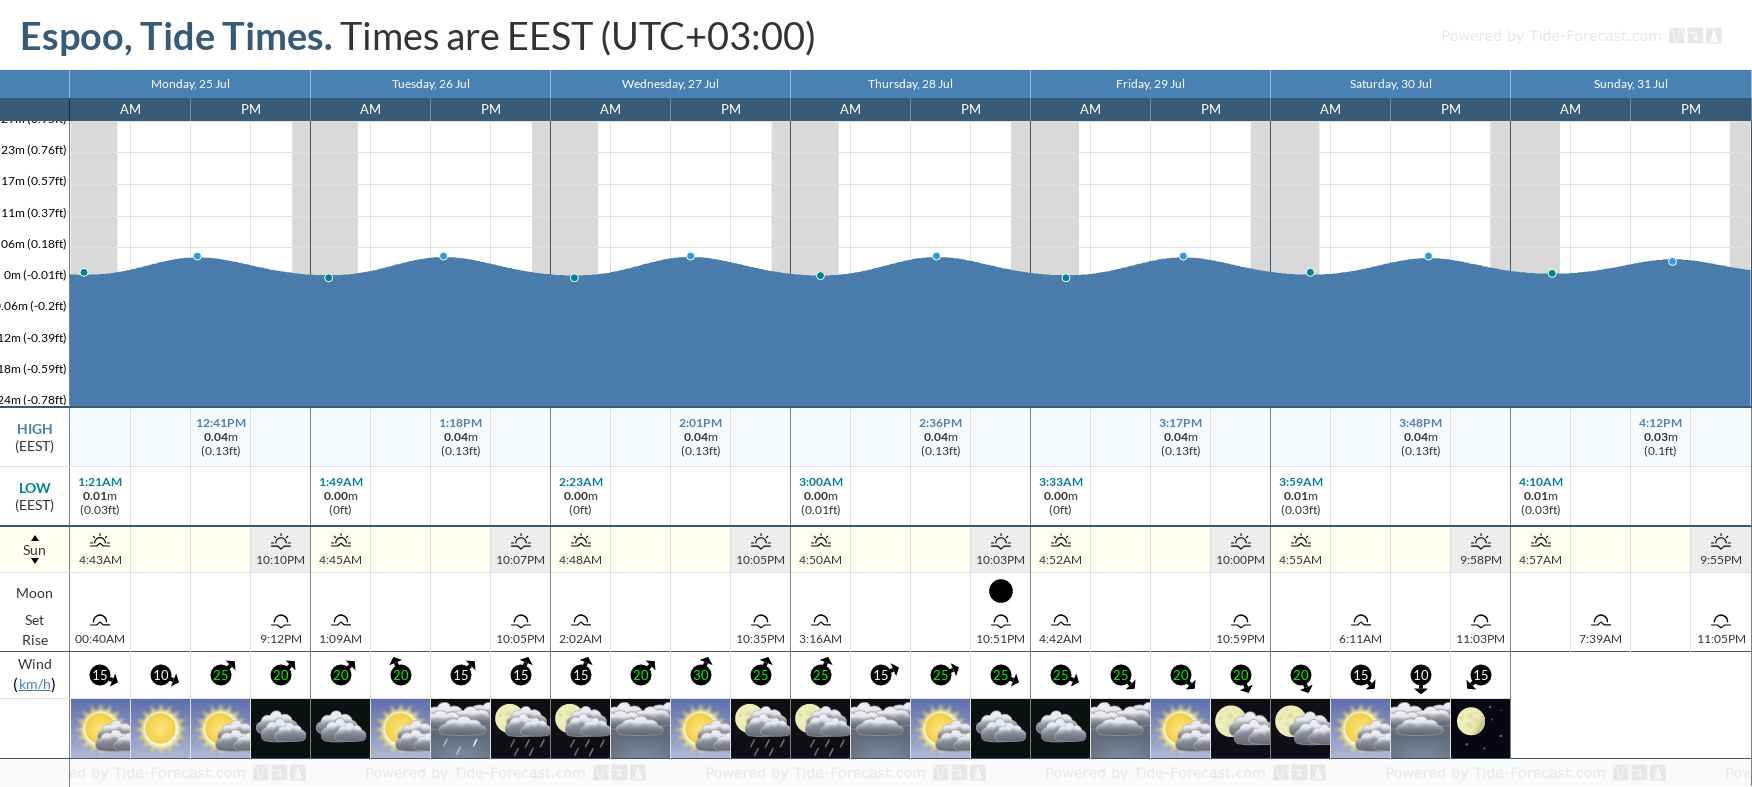 Espoo Tide Chart including high and low tide tide times for the next 7 days